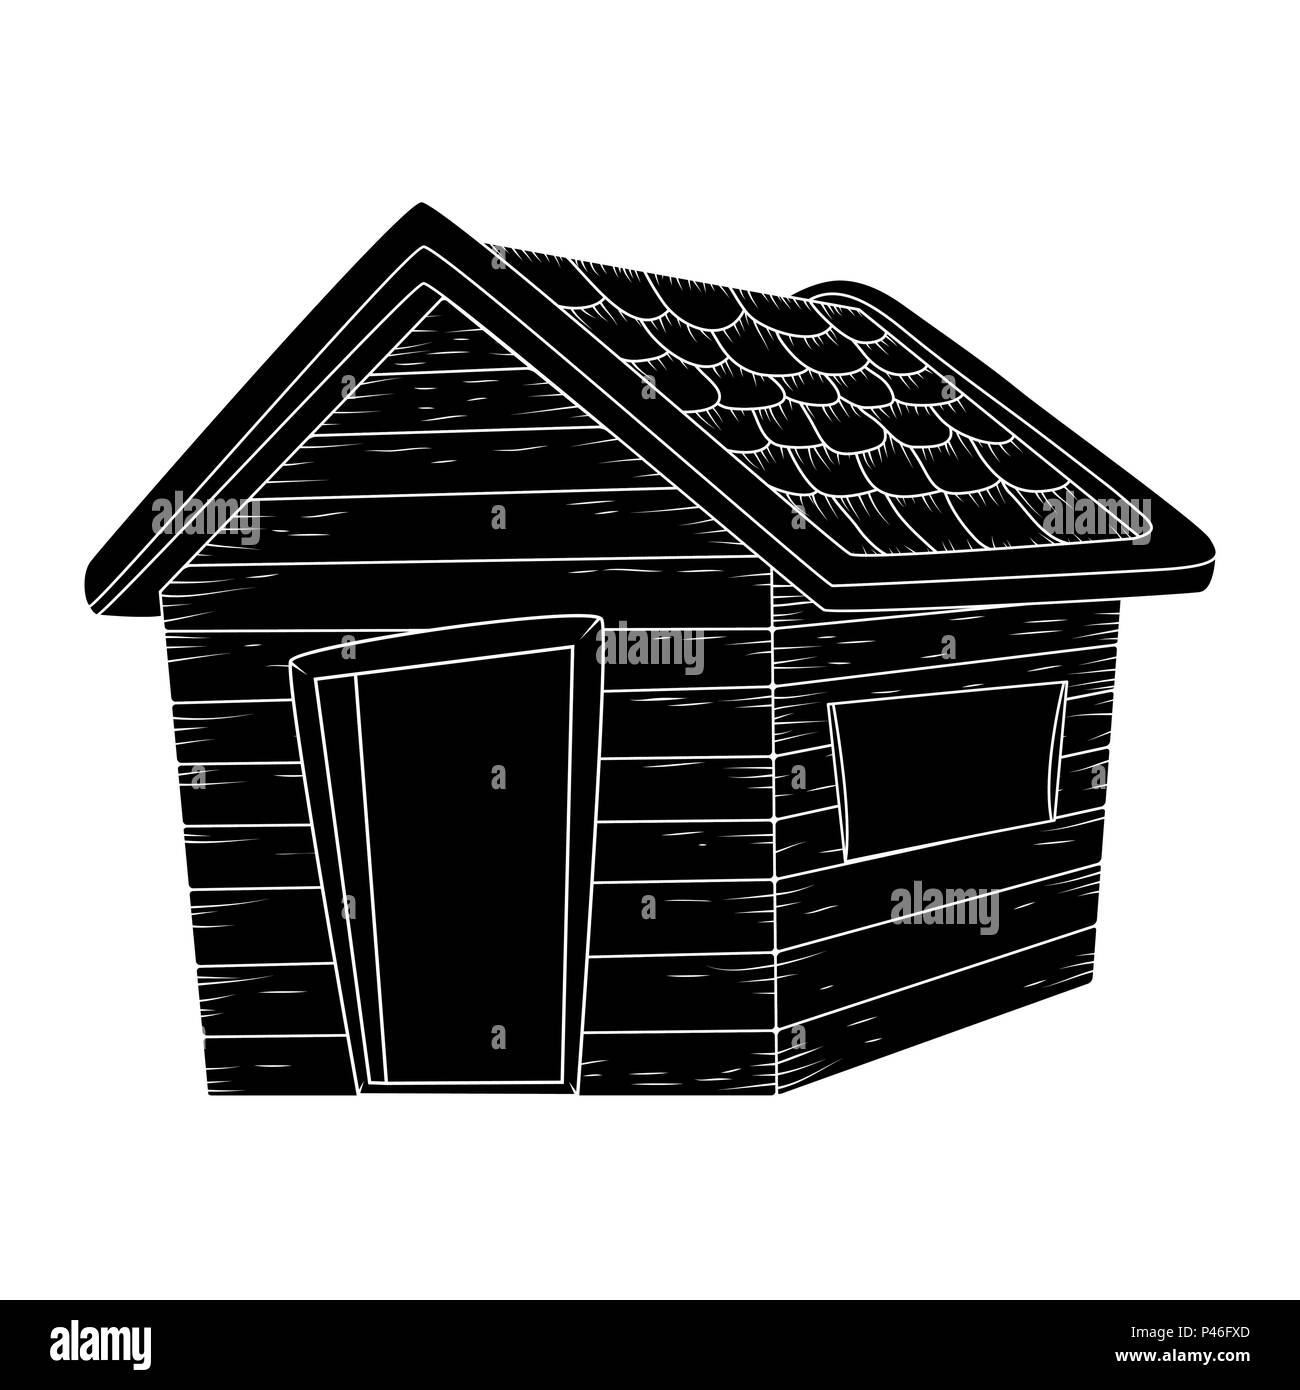 wooden house silhouette vector design isolated on white - Stock Vector